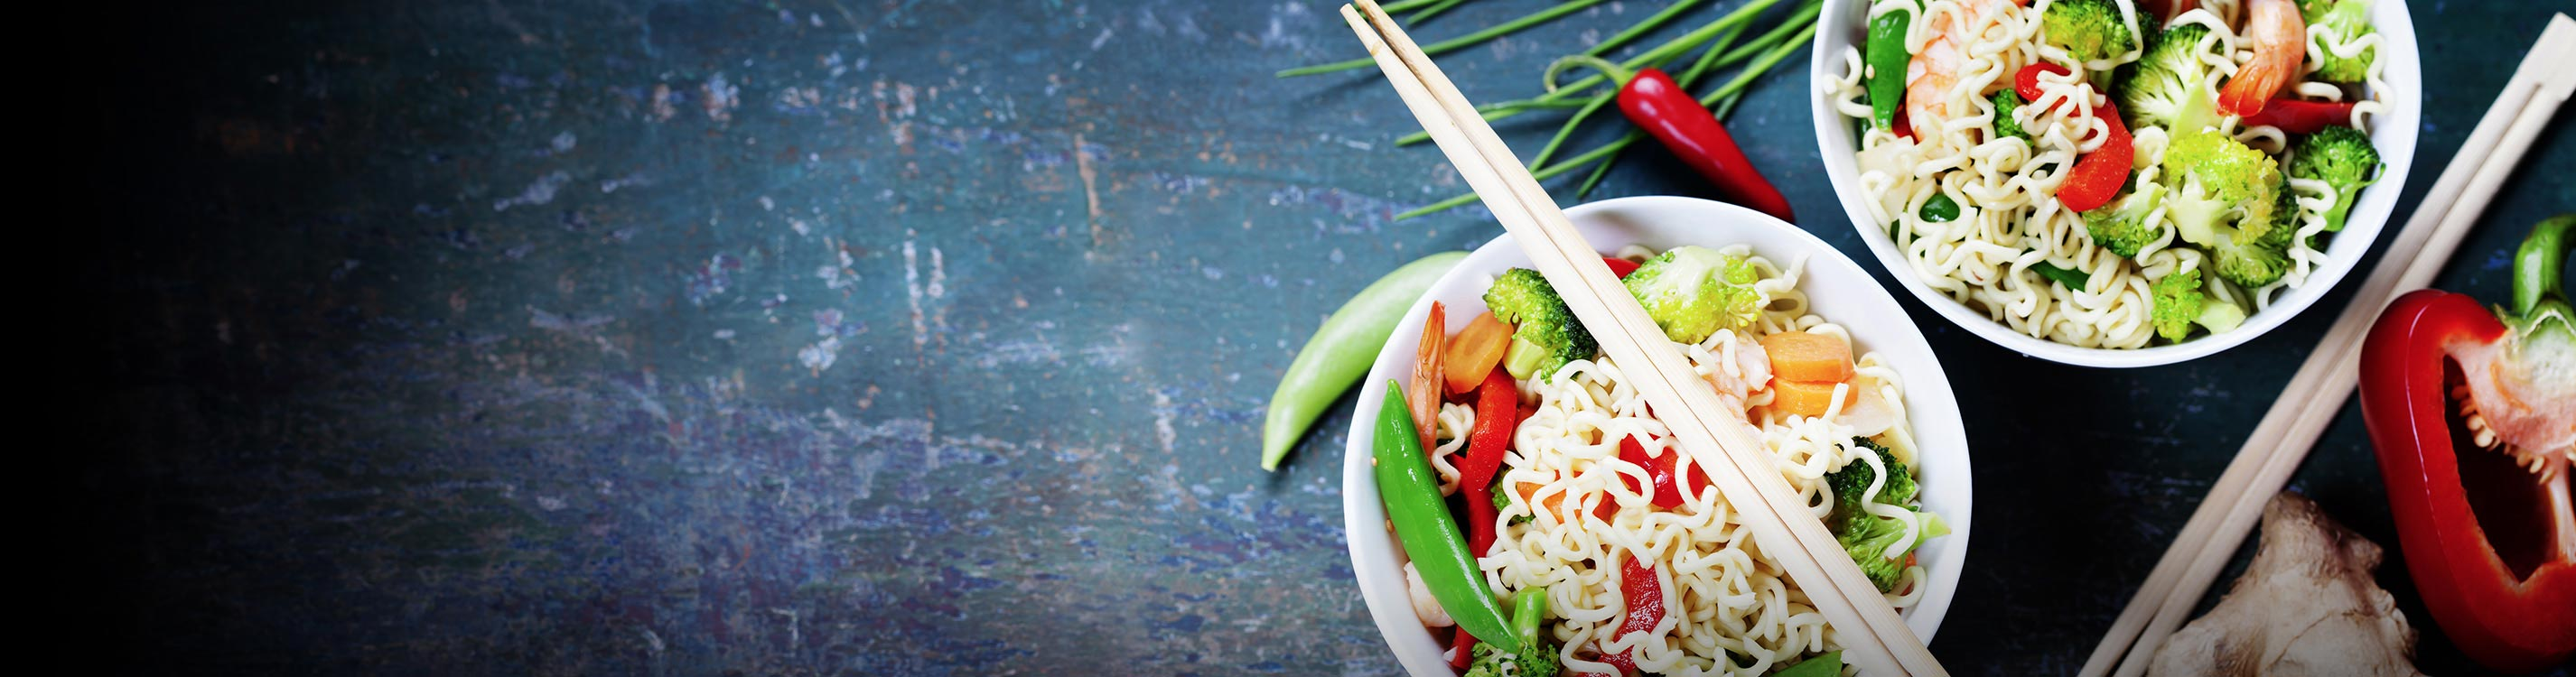 Asian noodles in bowl with chop sticks